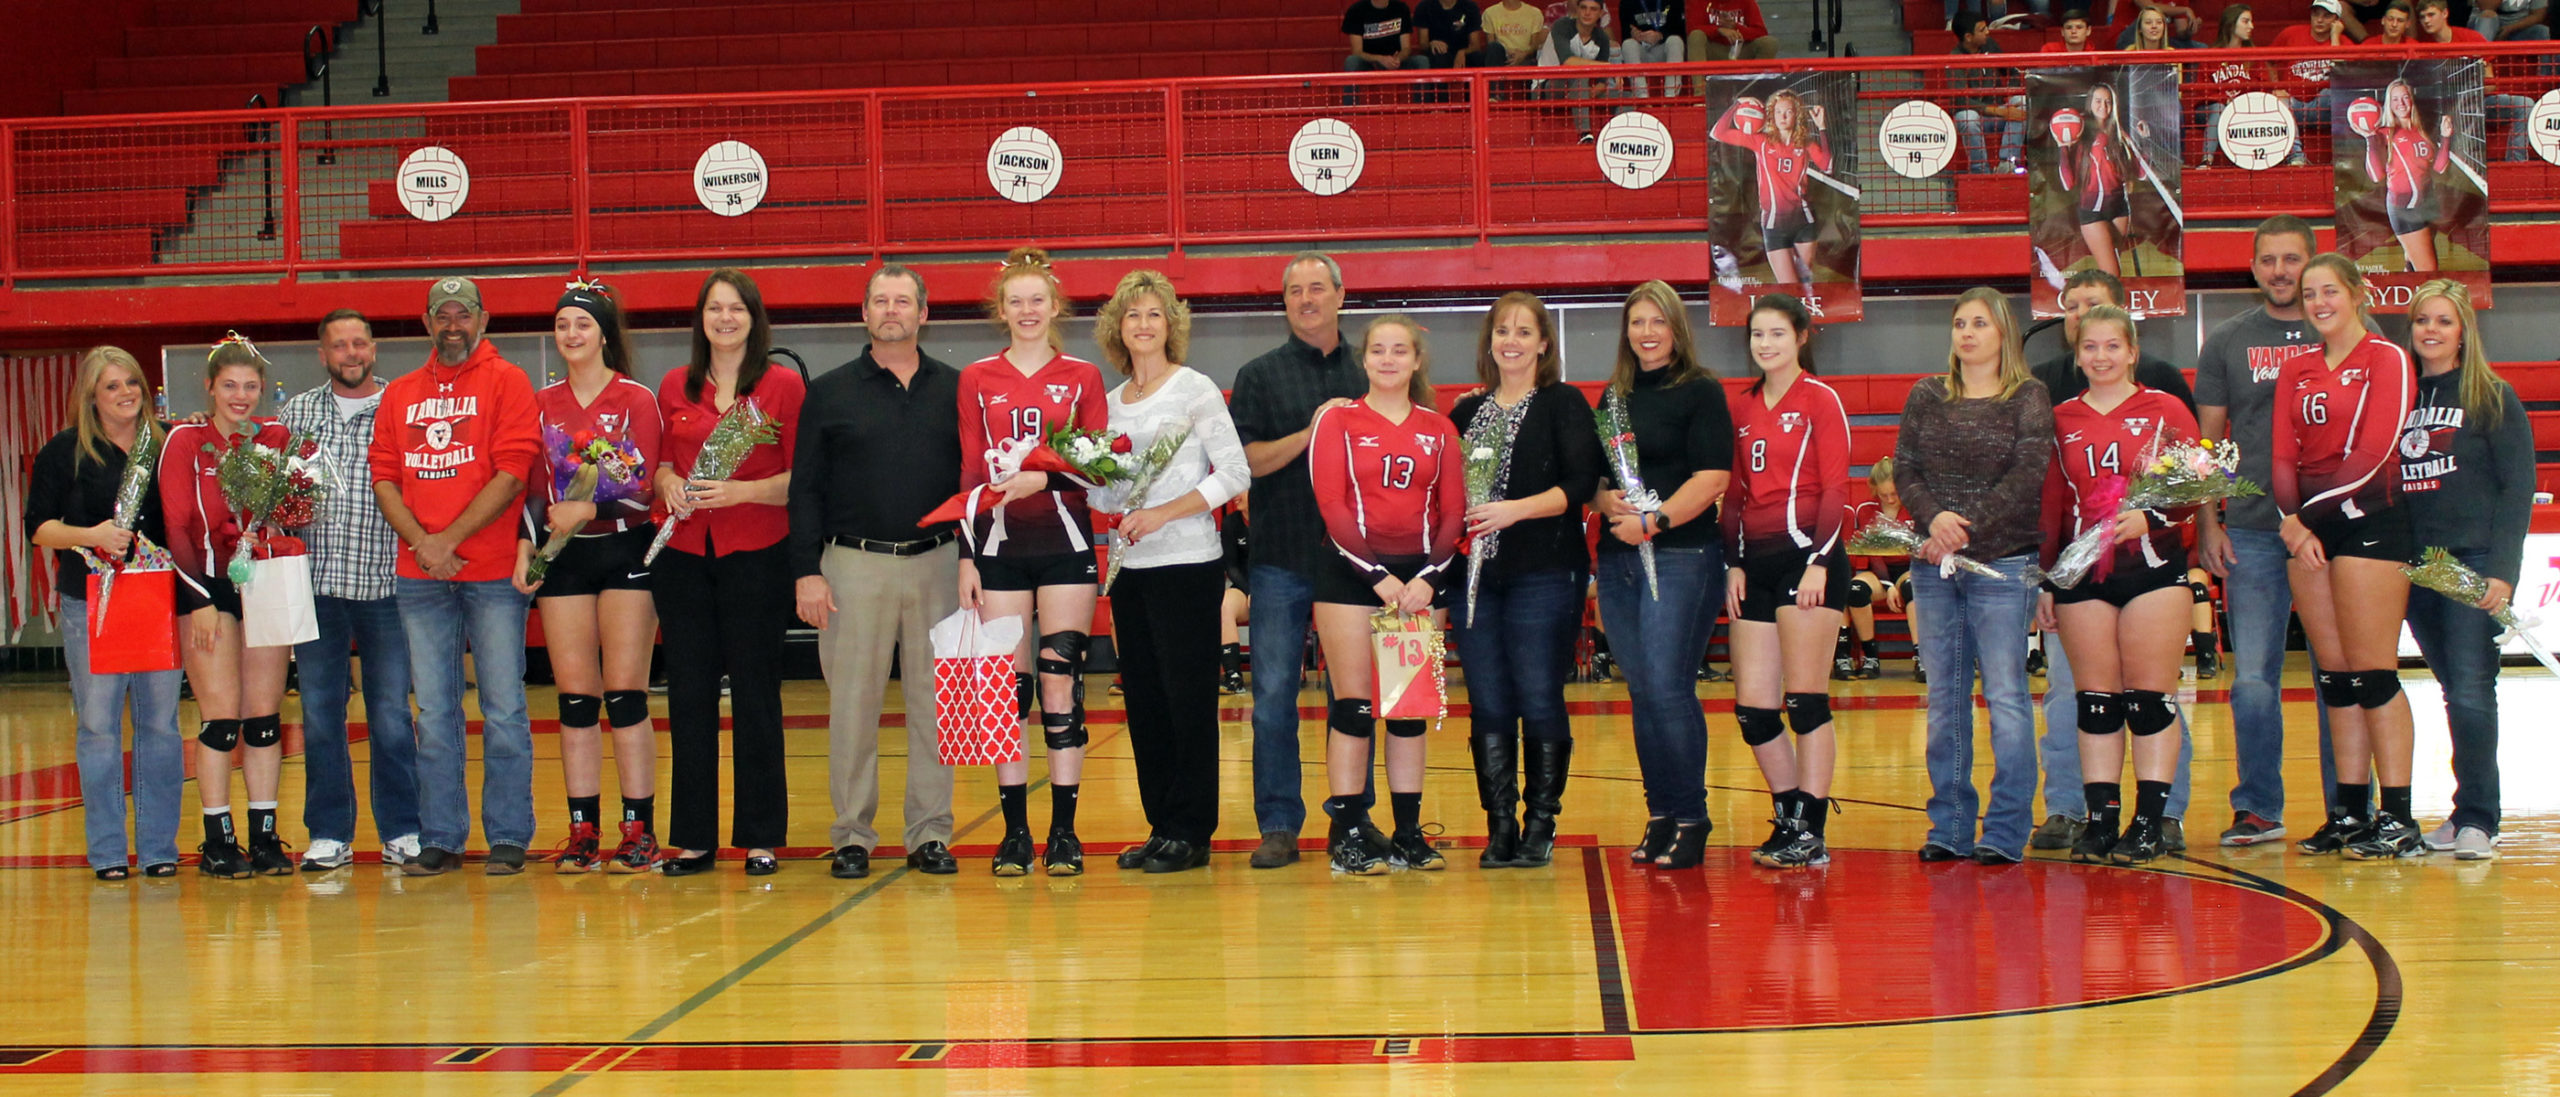 Lady Vandals Volleyball Wins On Senior Night